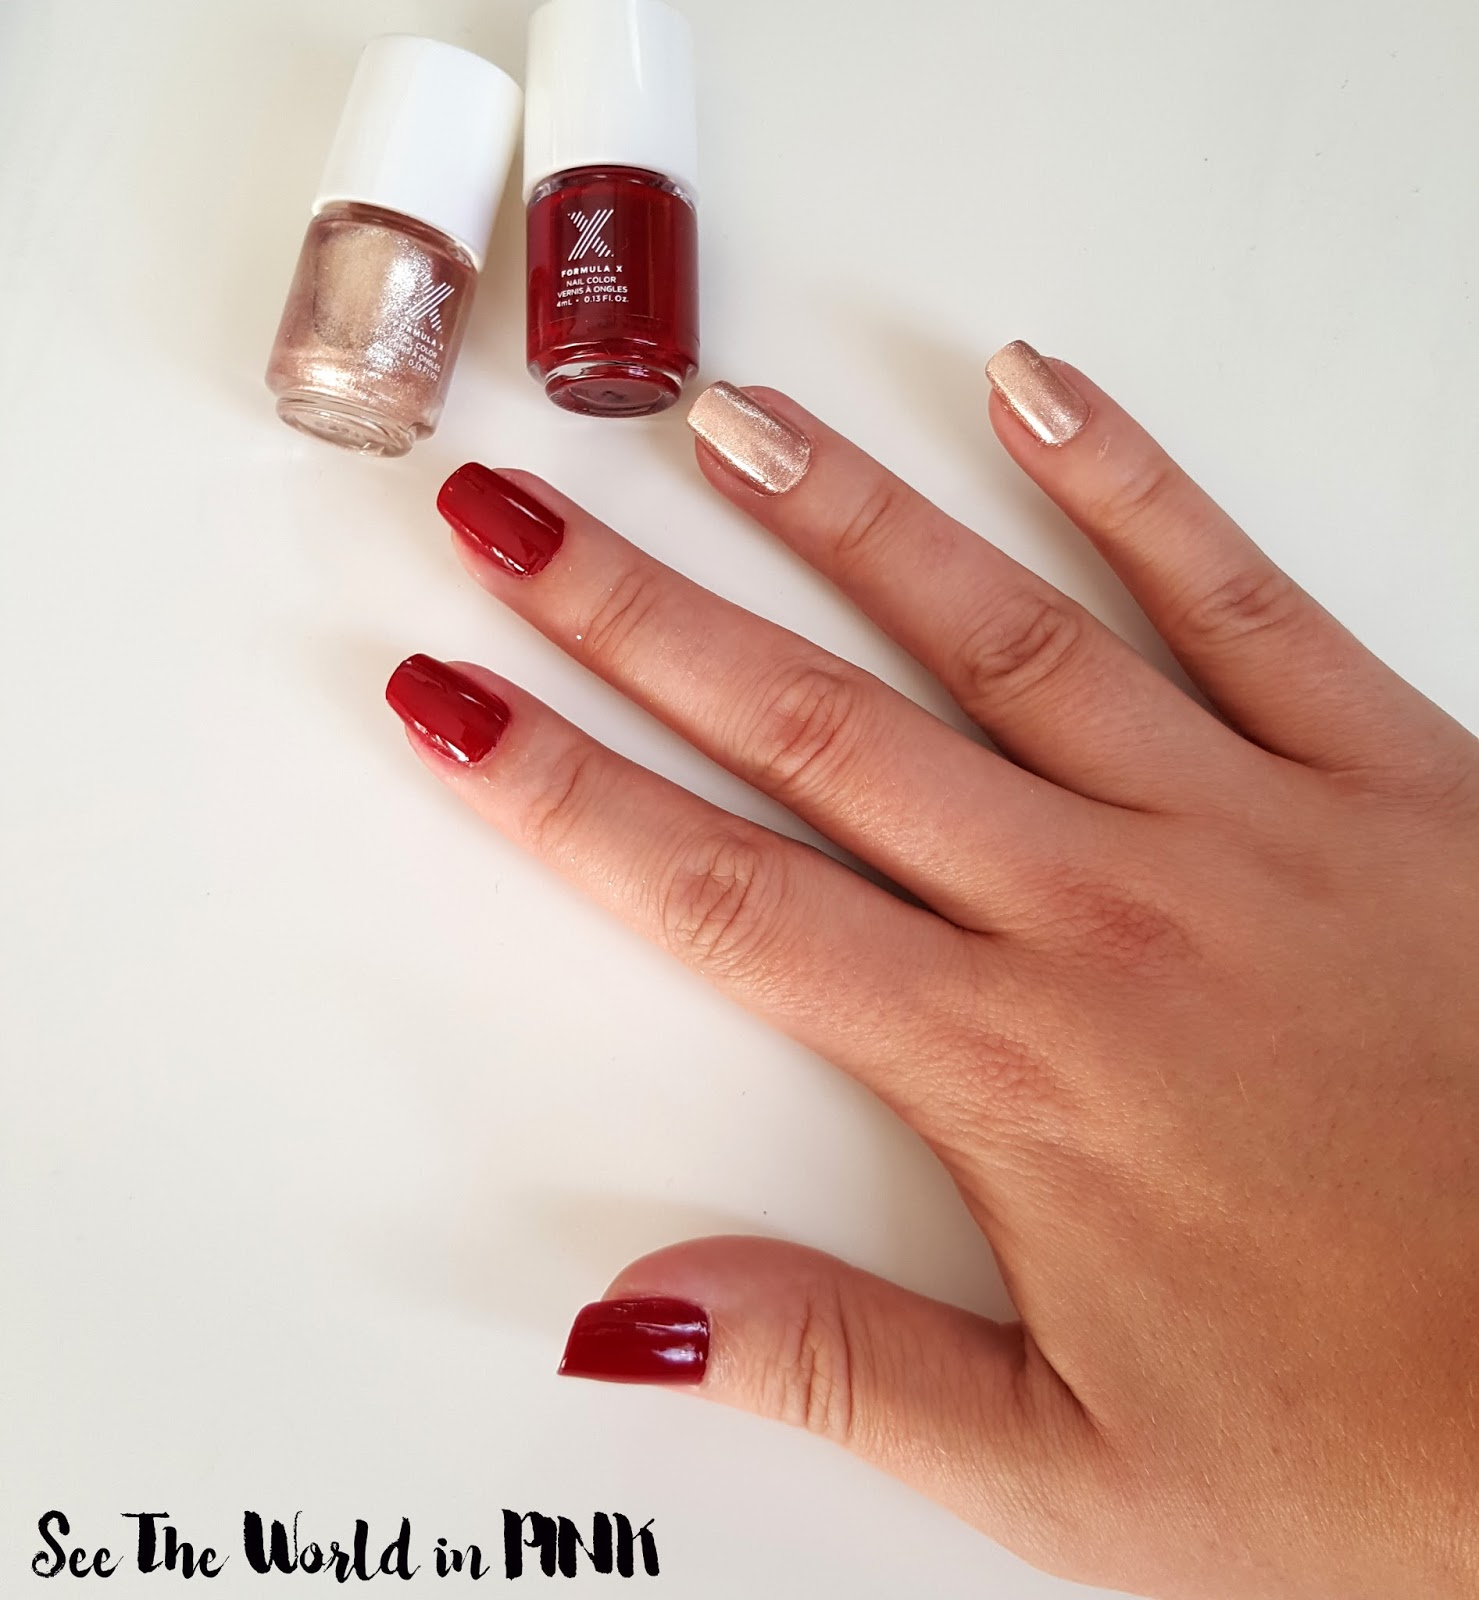 Formula X Nail Colours - Ignite and Revved Up!